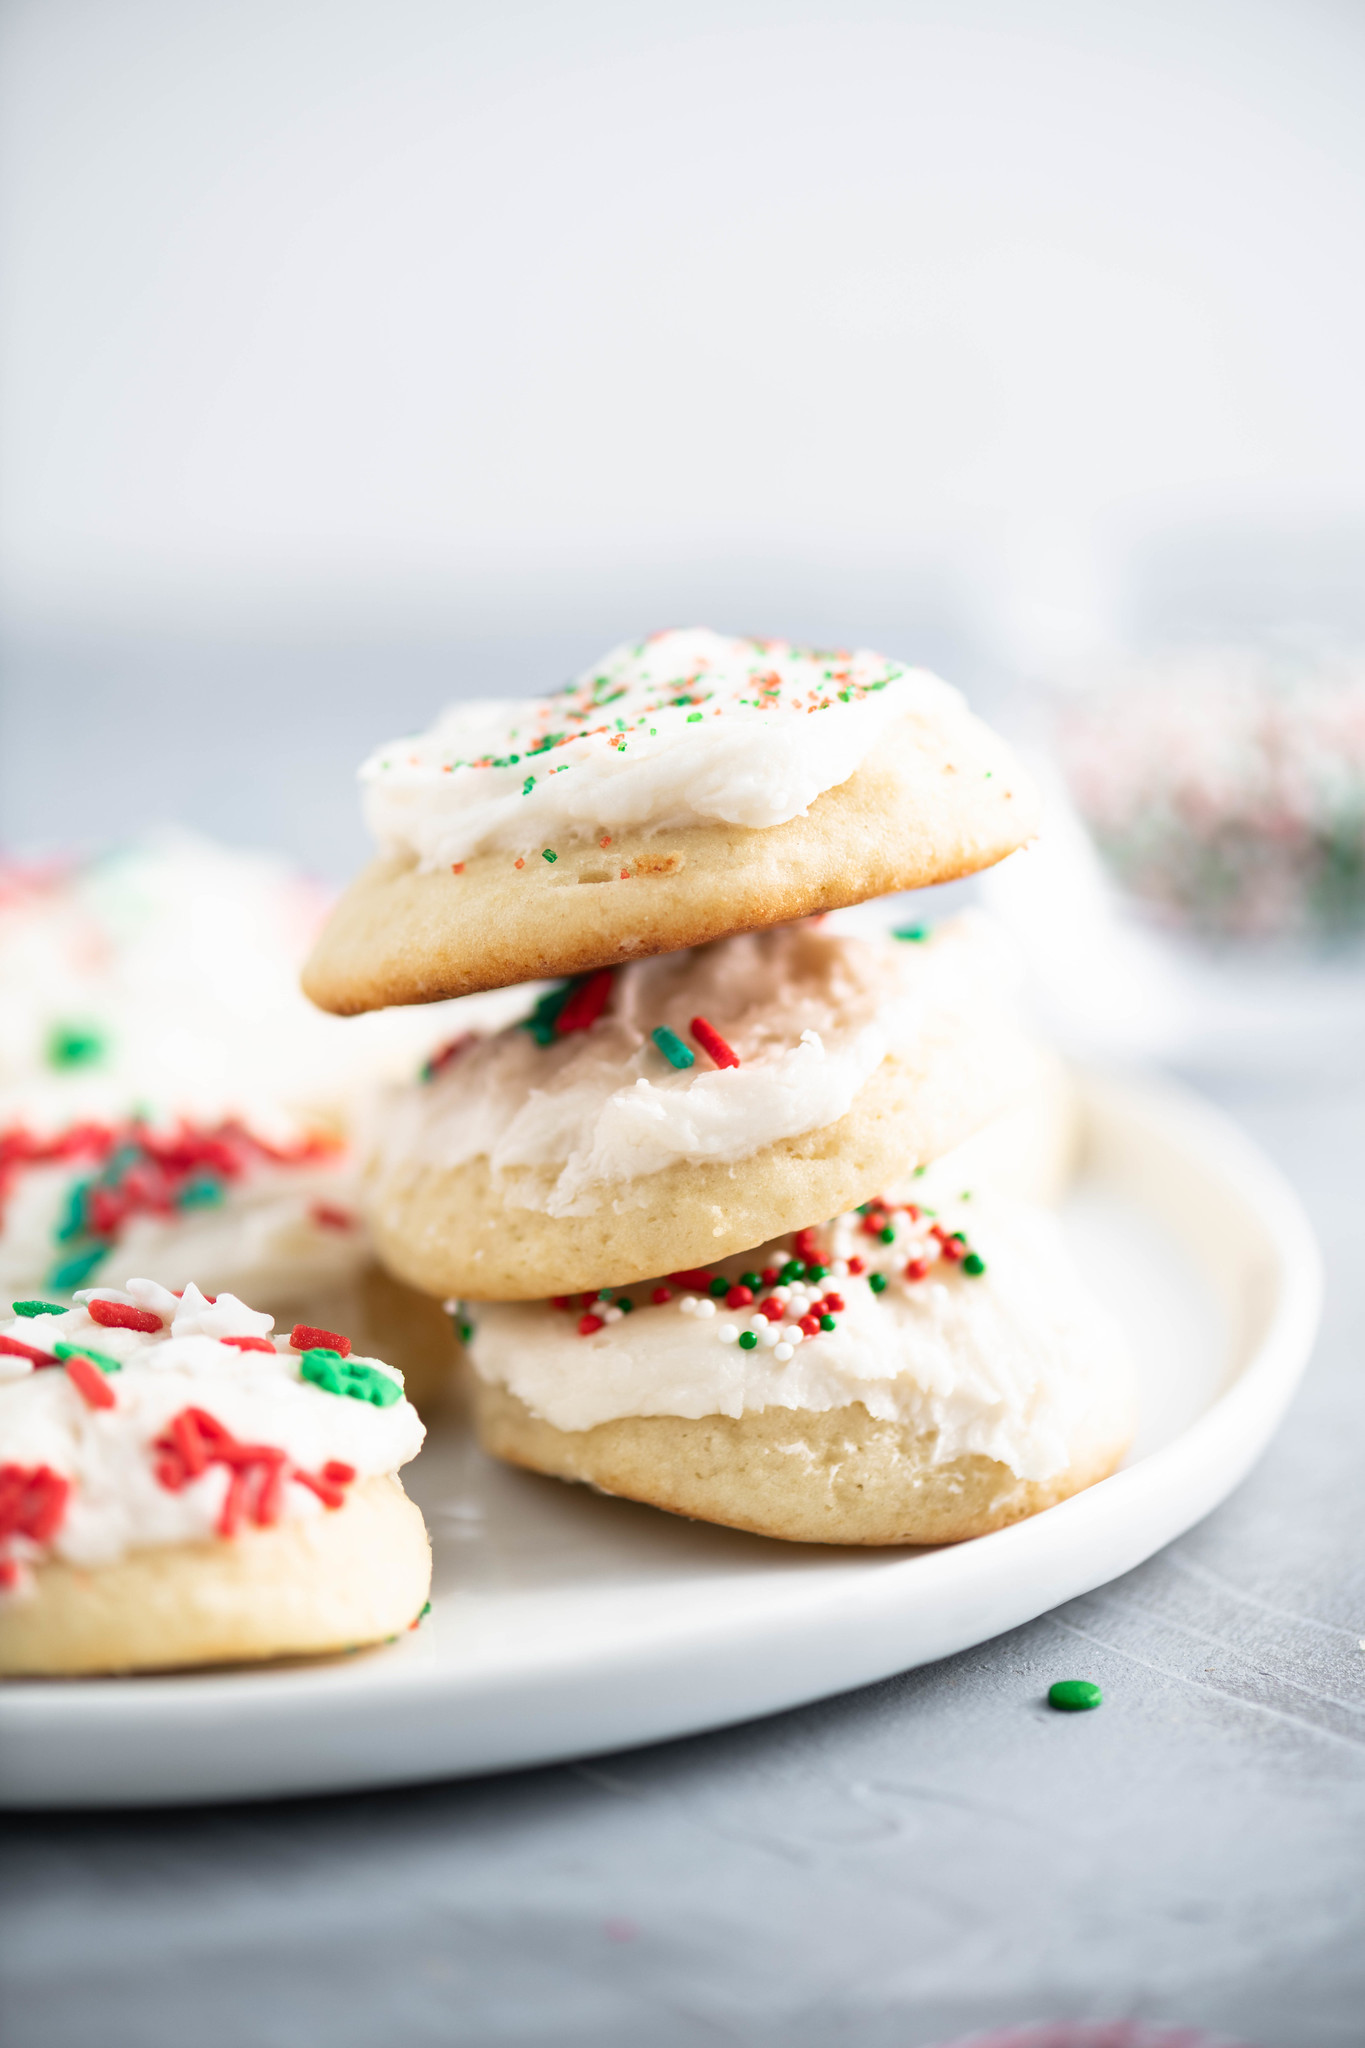 These Italian Christmas cookies are the most tender, fluffy cookie around. With a cake-like texture and a not too sweet buttercream frosting, these are the perfect Christmas cookie.